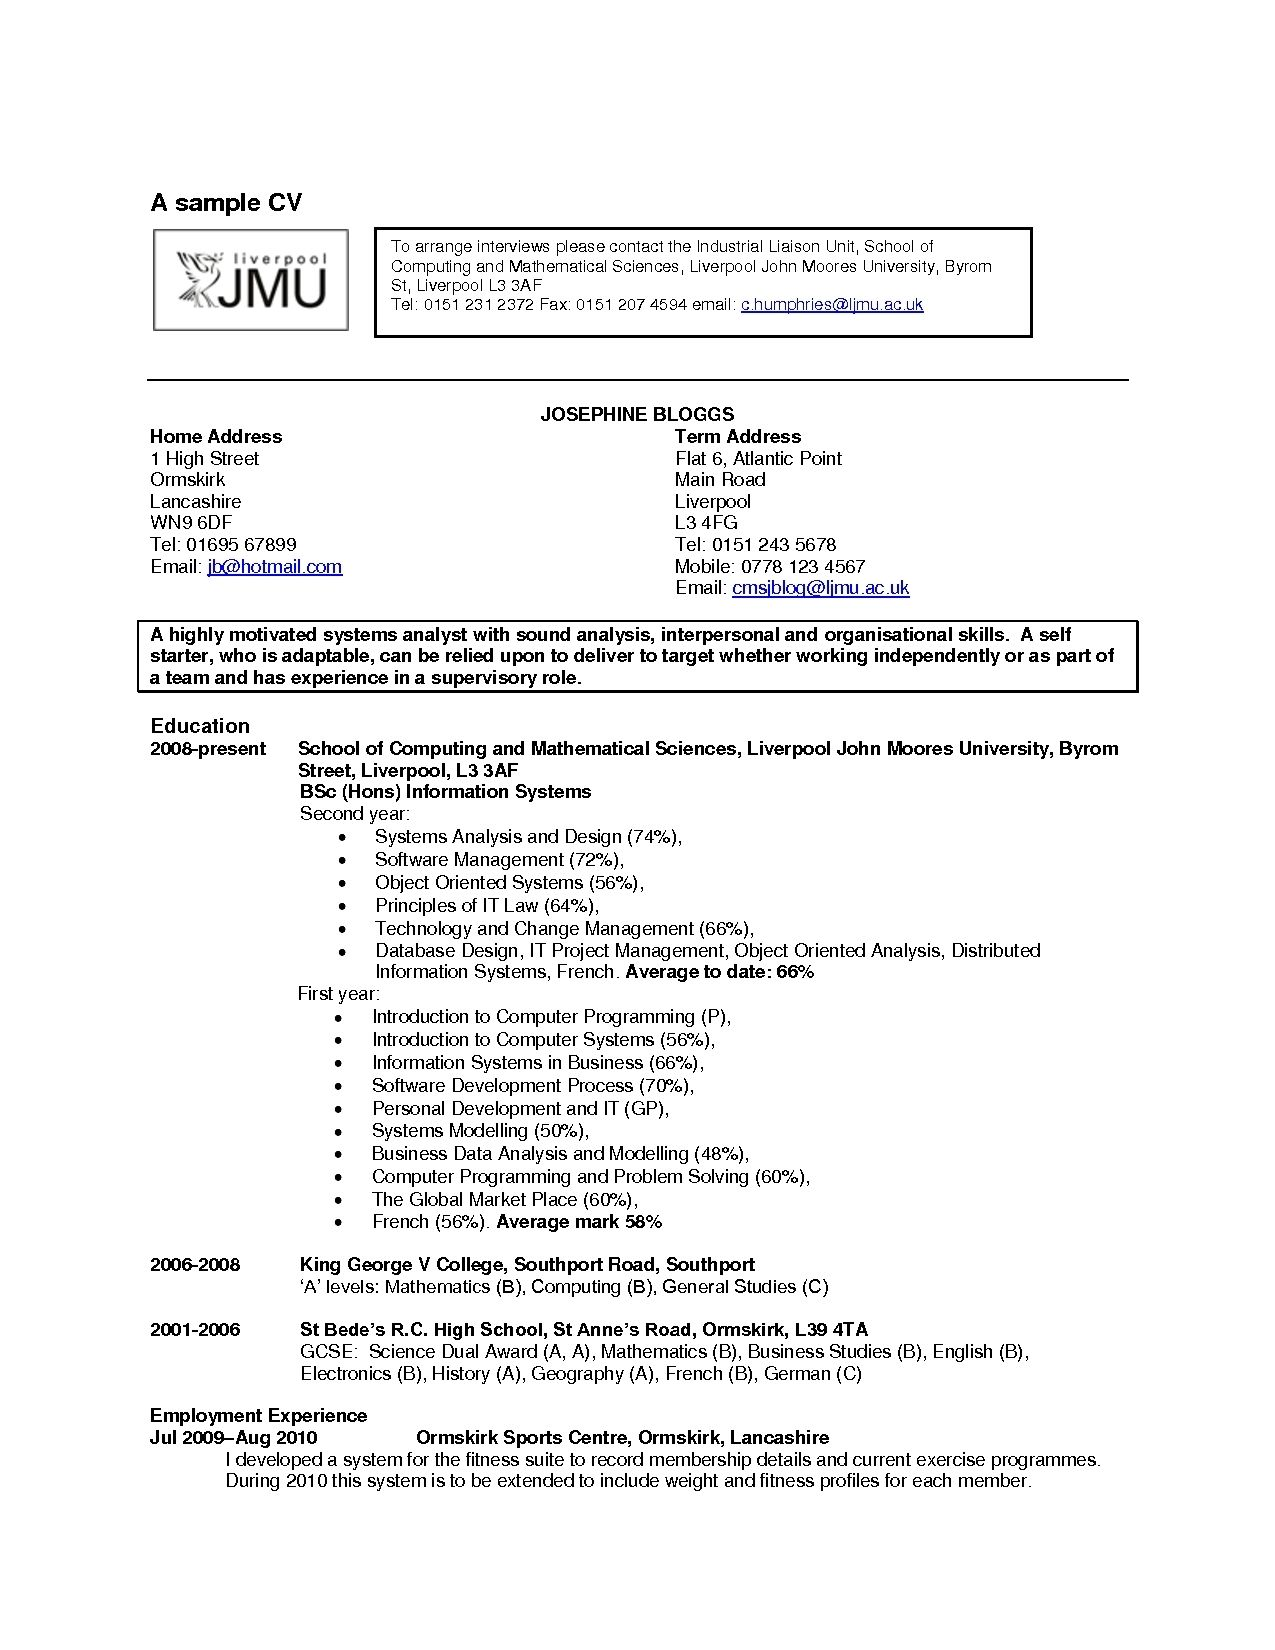 cv template hobbies resume examples and interests activities on mammography samples Resume Interests And Activities On Resume Examples